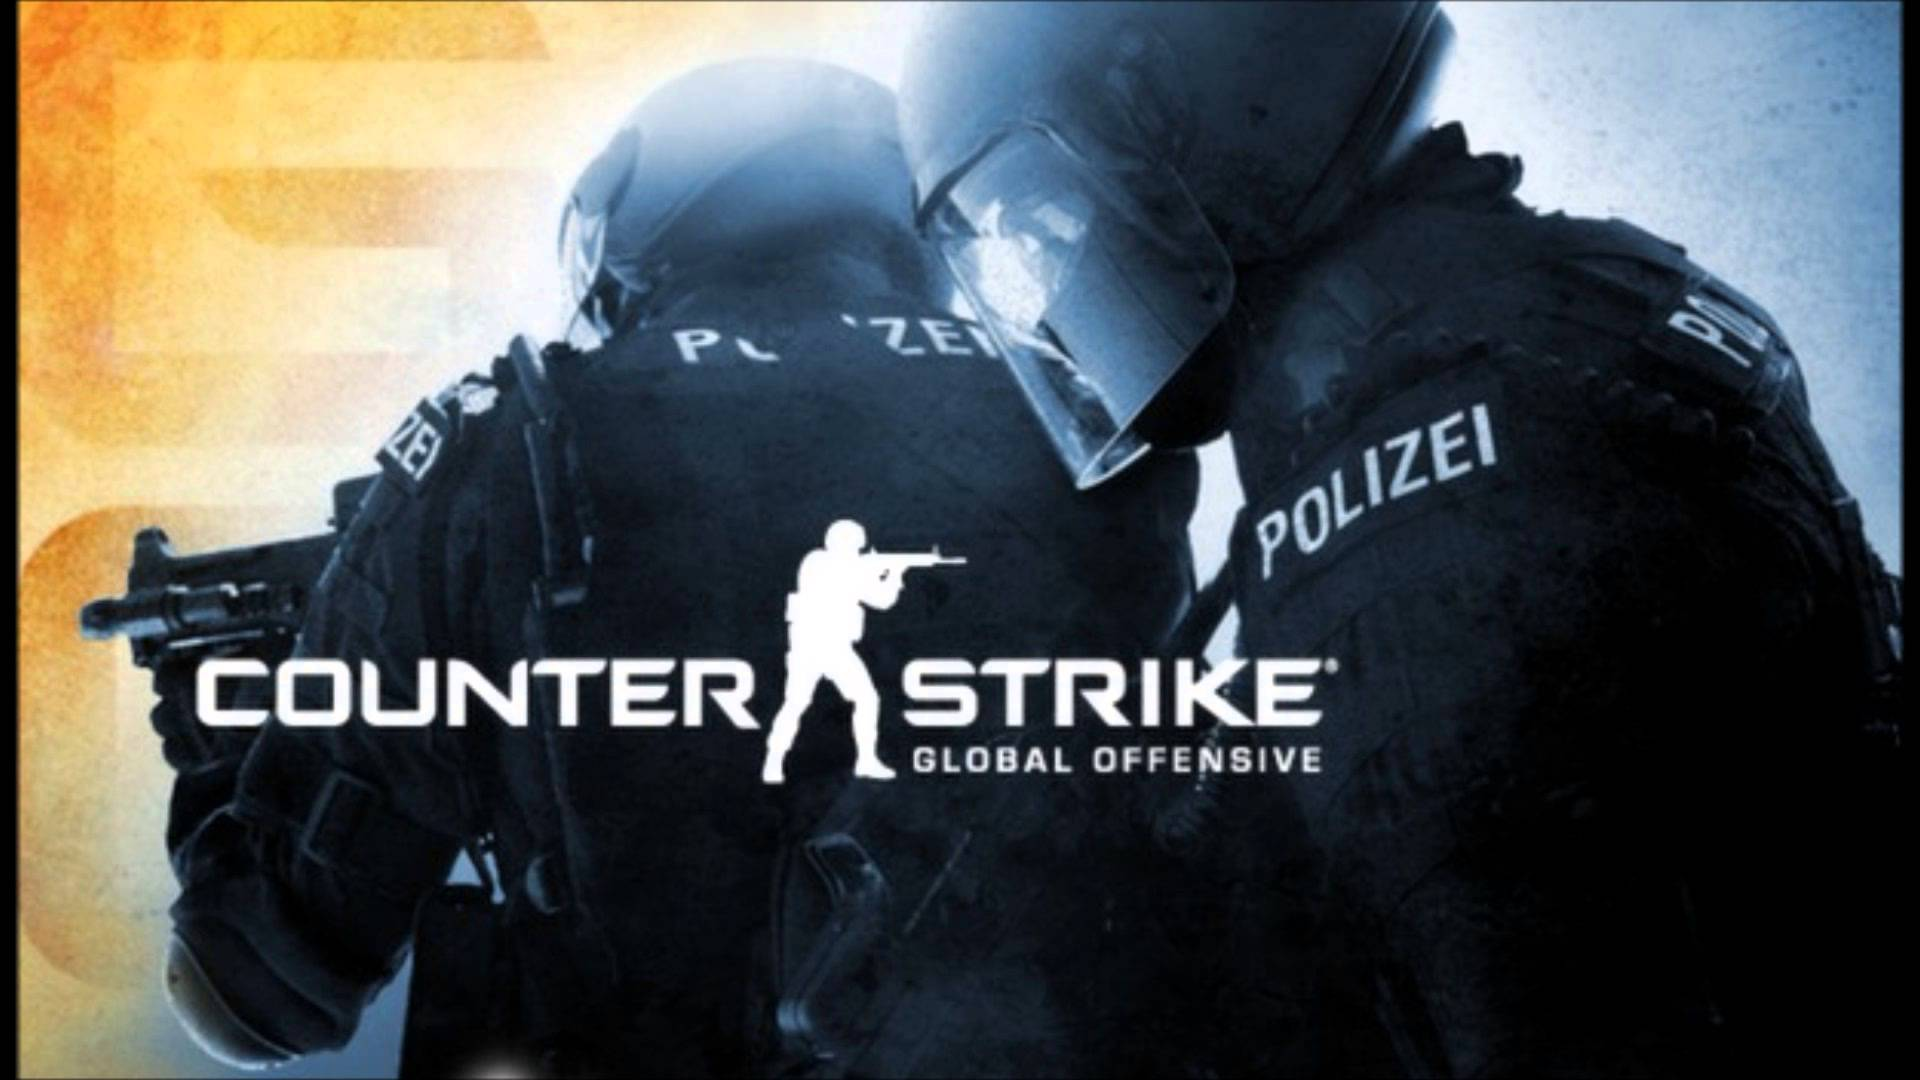 Download Counter Strike Global Offensive HD Wallpapers Gallery